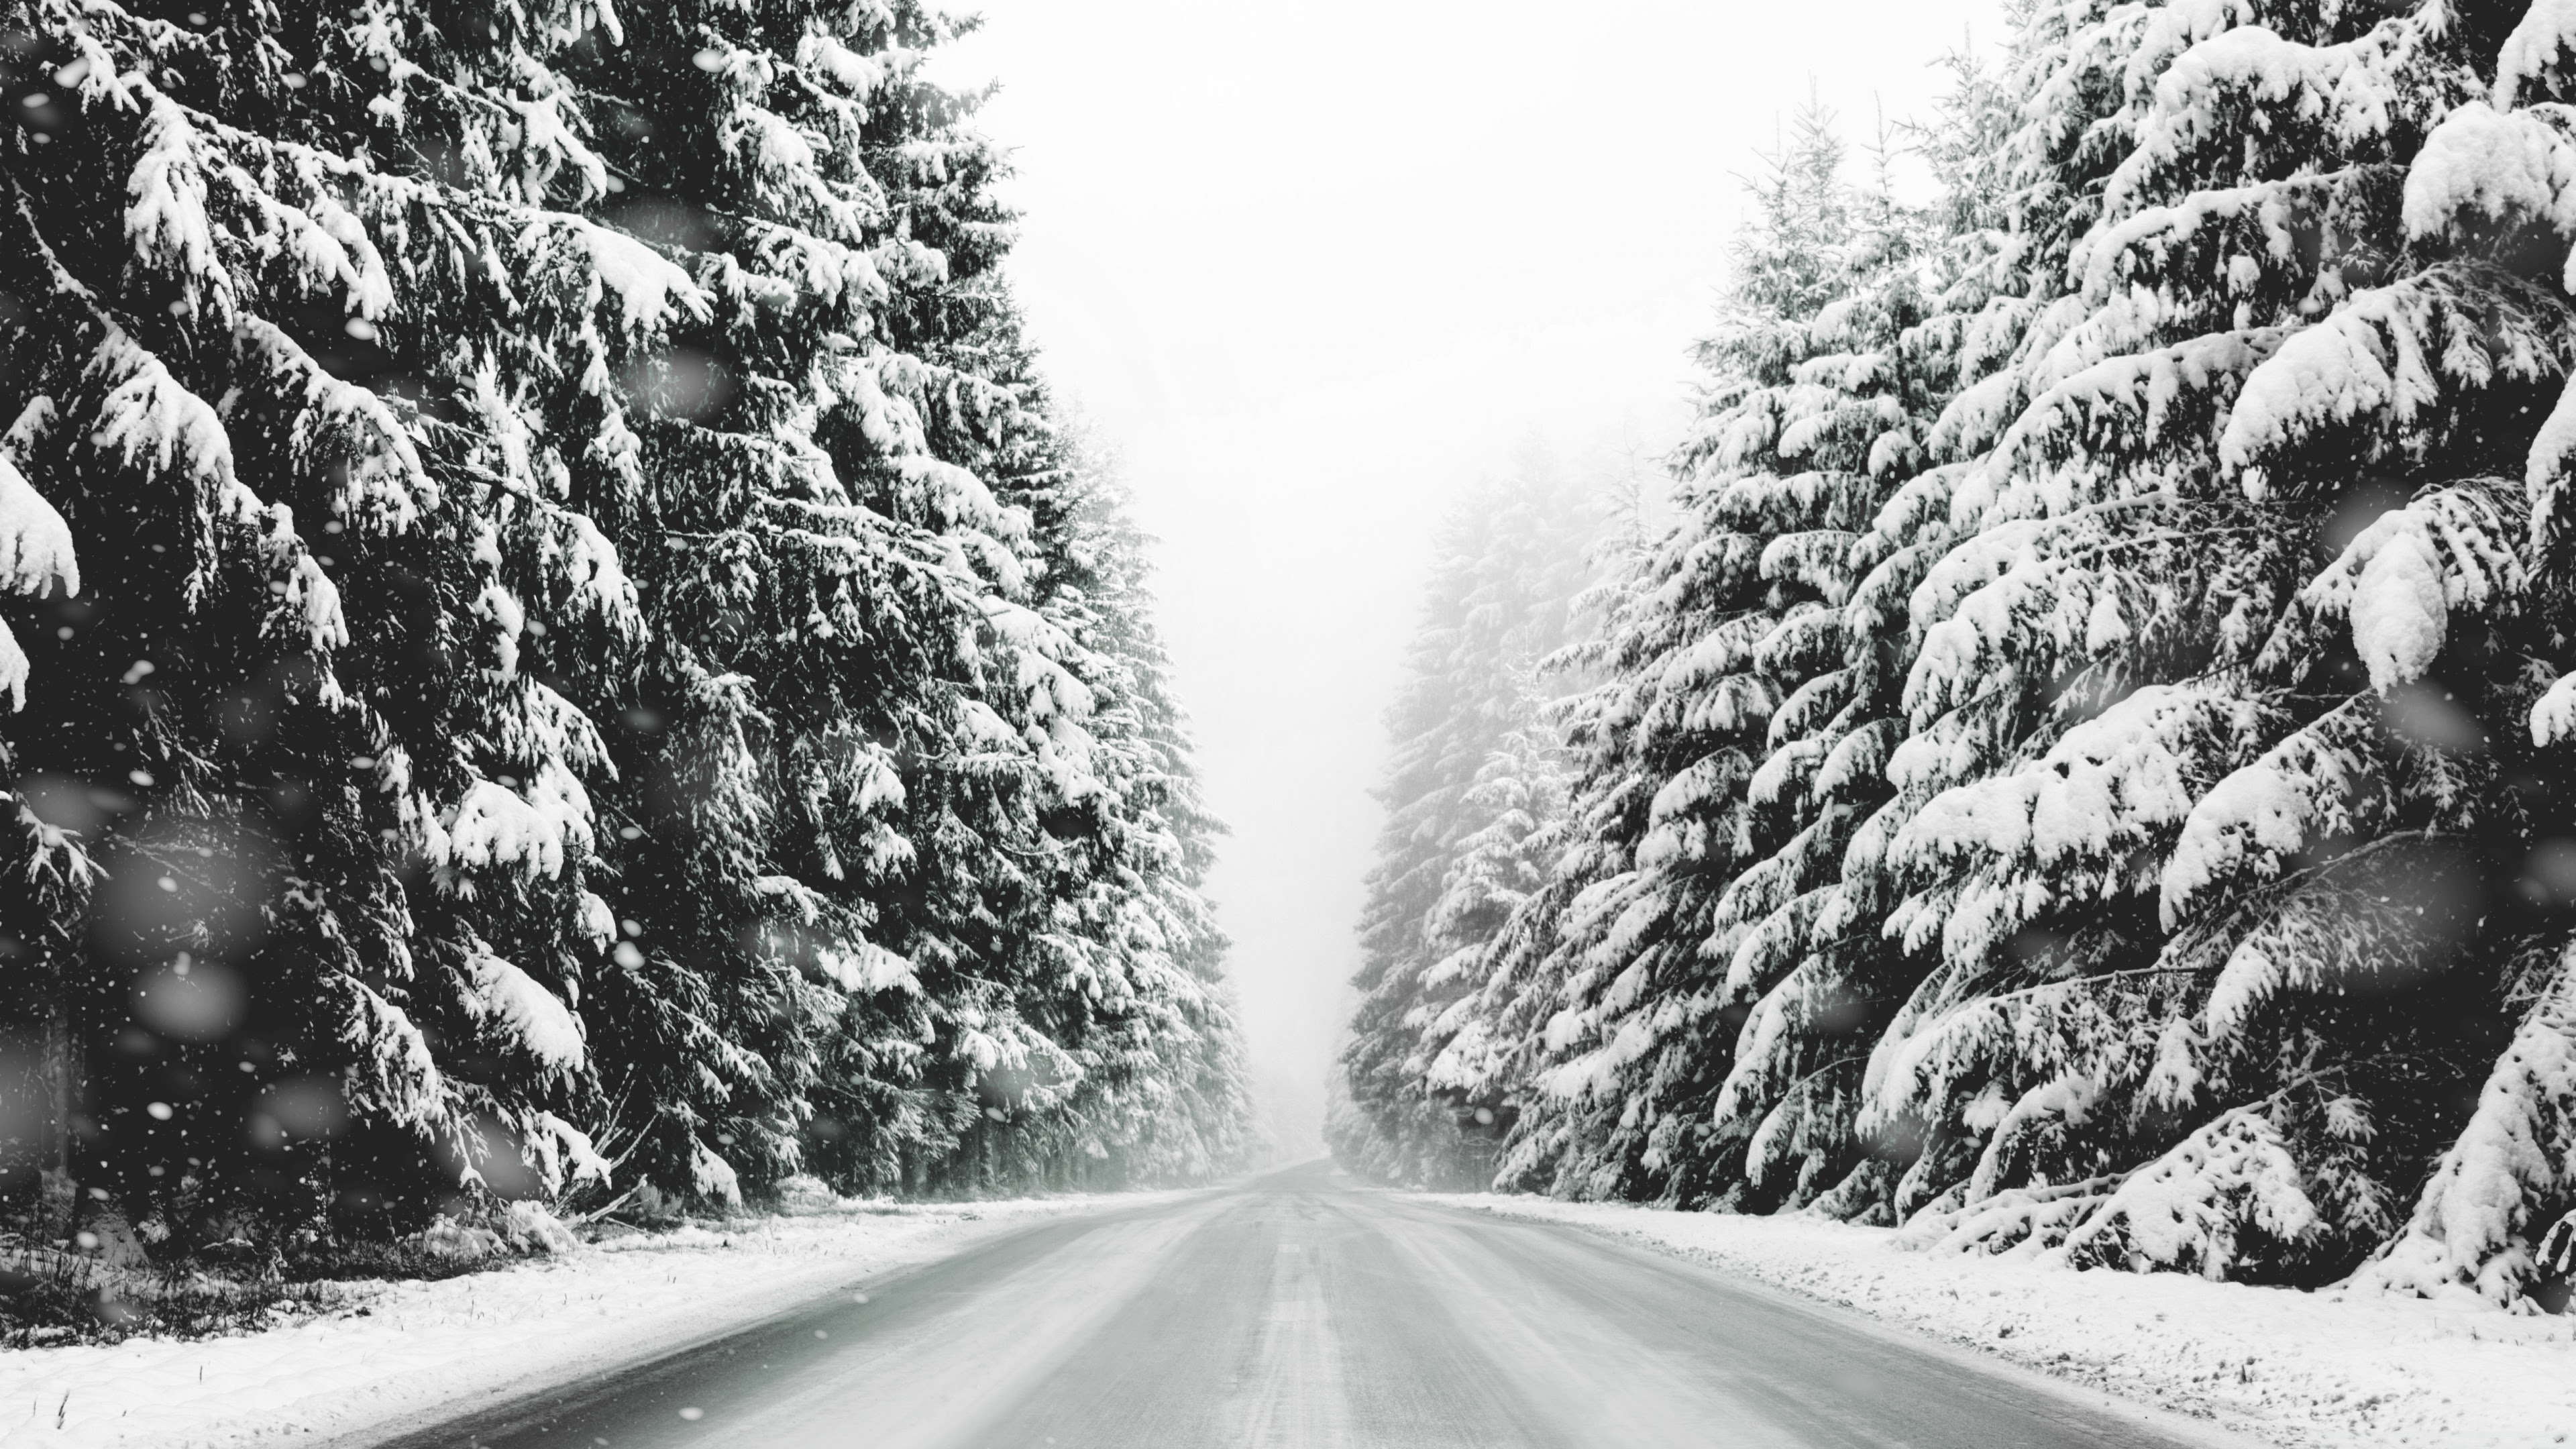 Road Forest Snow Winter Landscape Black And White Ultra Hd